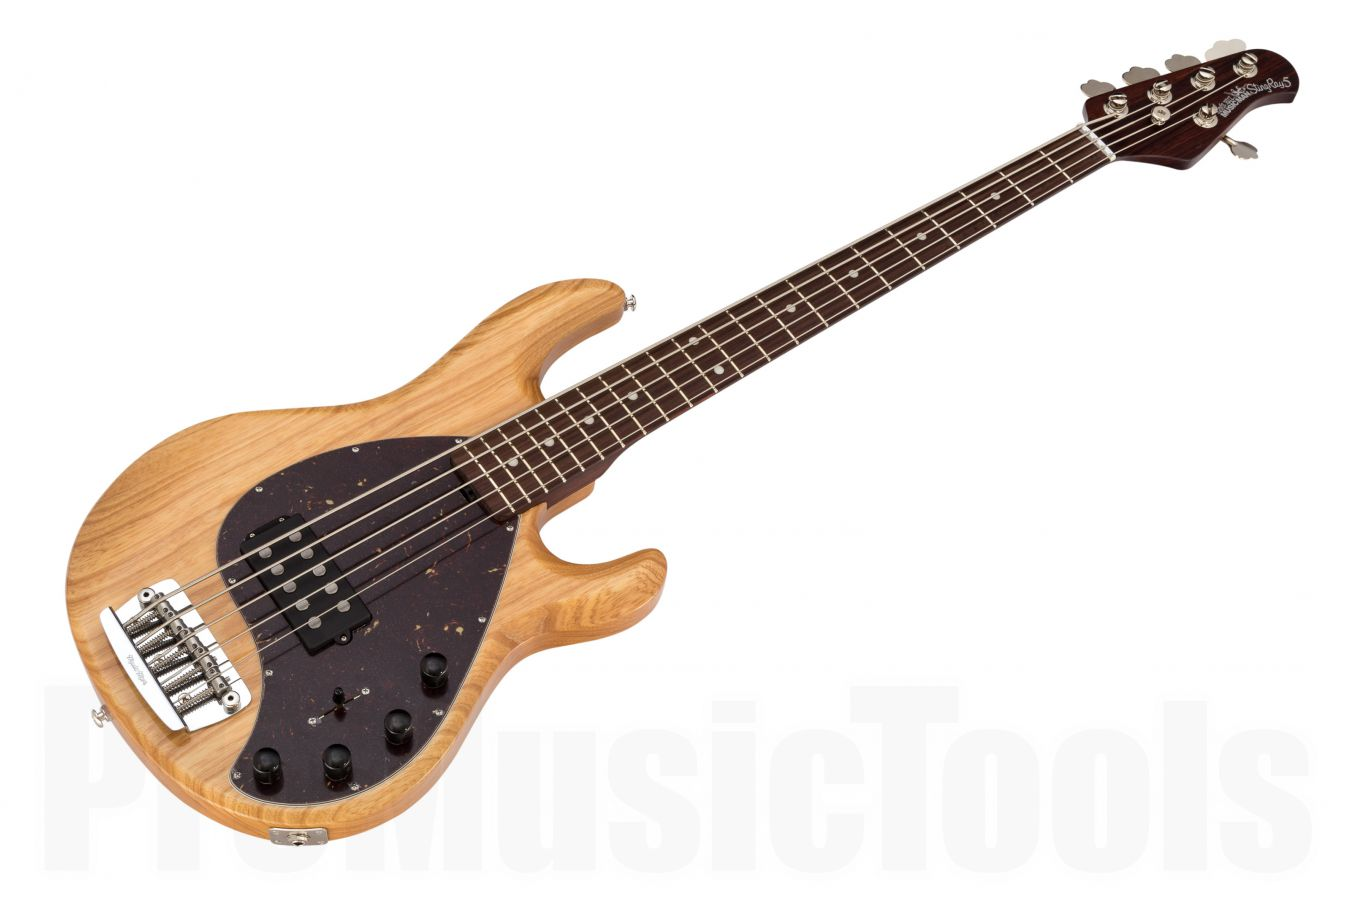 Music Man USA Stingray 5 NT - Natural - Rosewood Neck Limited Edition